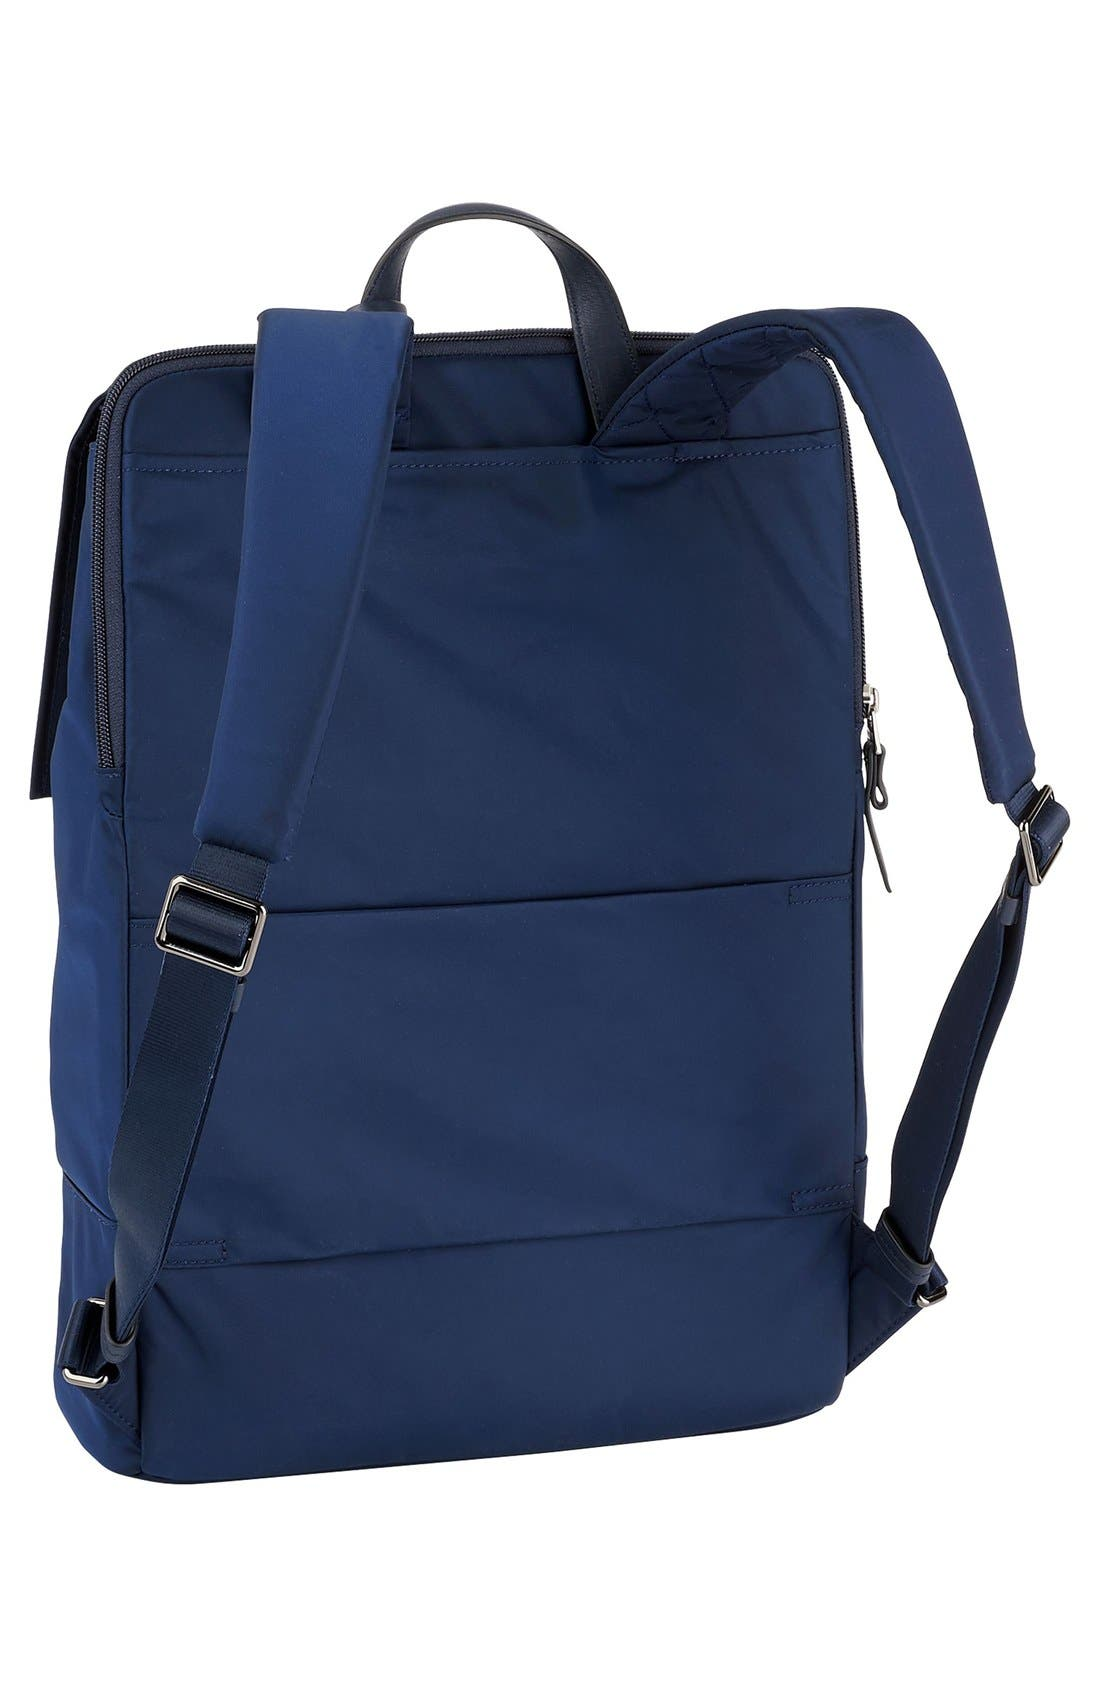 'Voyageur - Sacha' Flap Backpack,                             Alternate thumbnail 8, color,